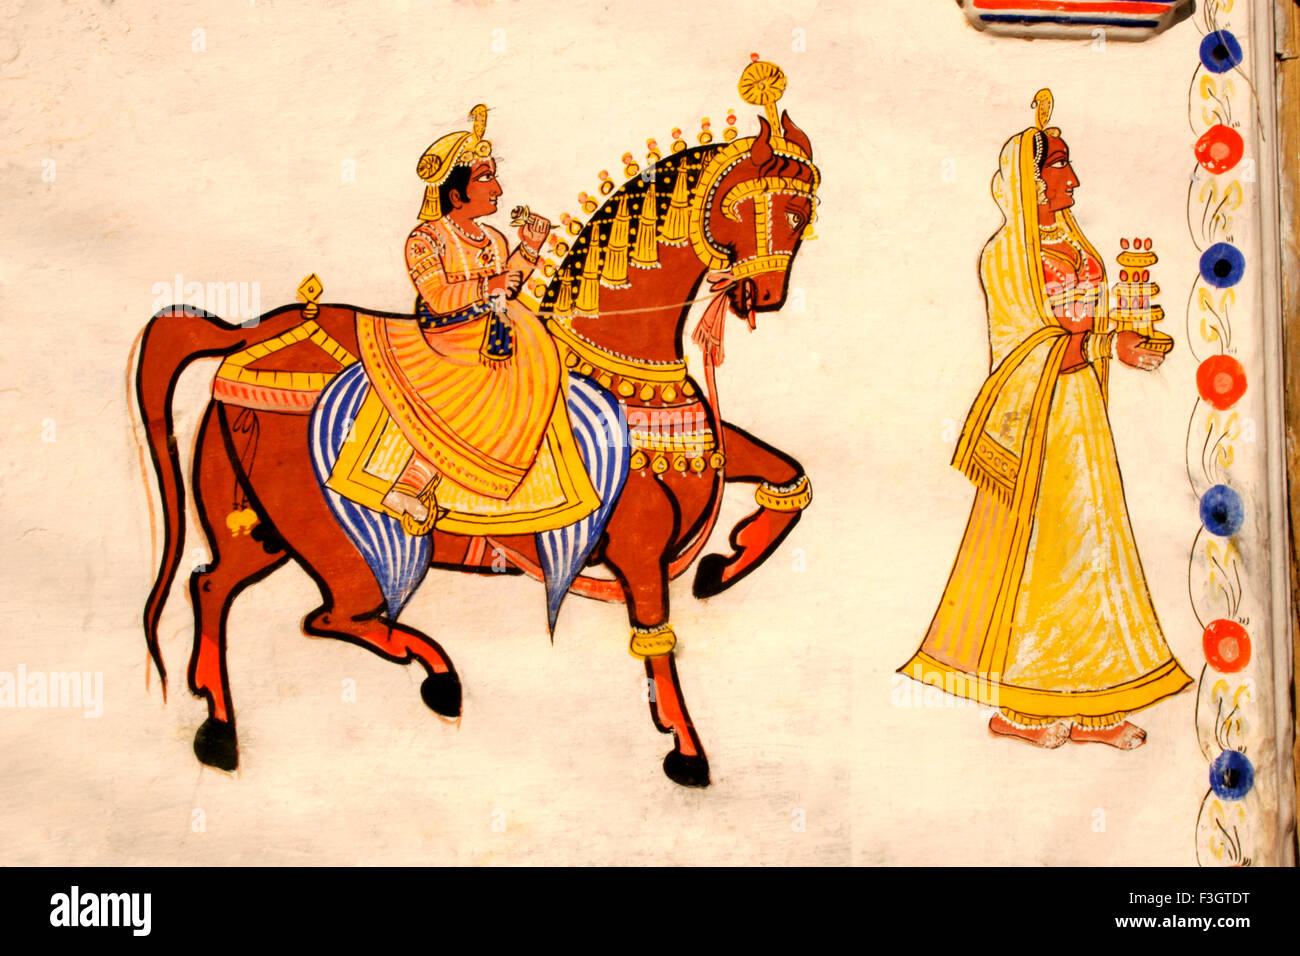 Mural Painting King On Horse High Resolution Stock Photography And Images Alamy